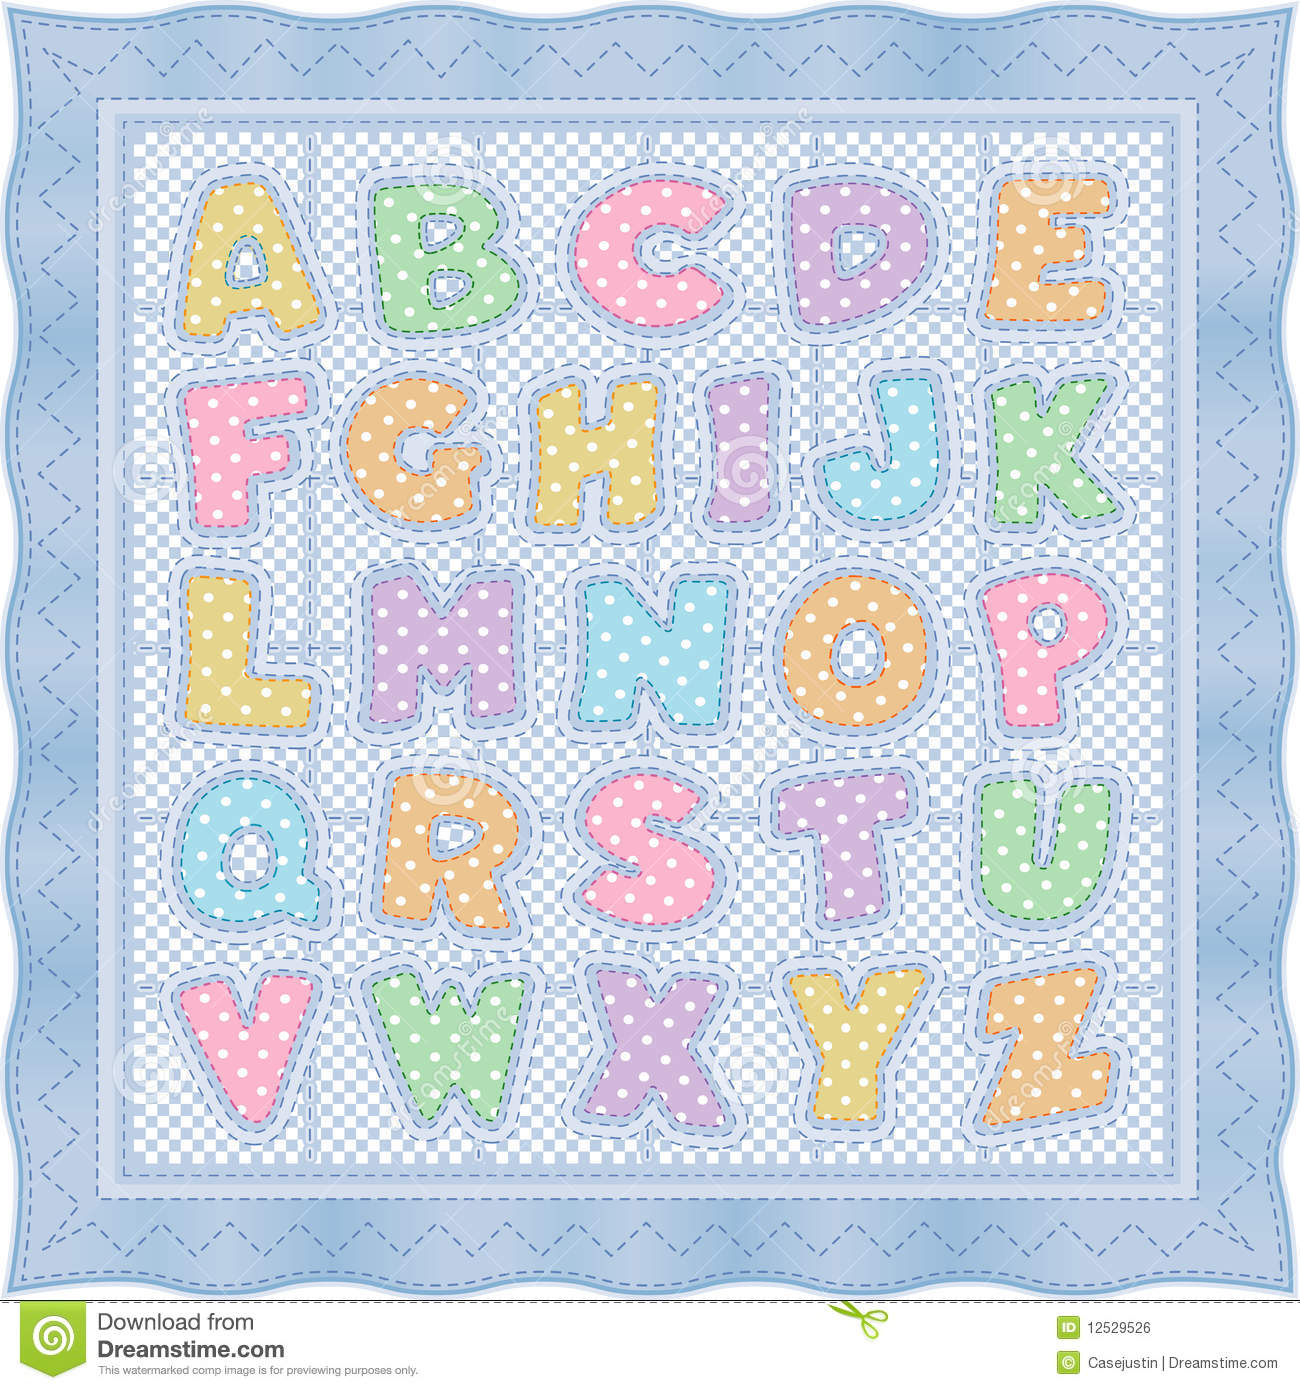 Alphabet Baby Quilt, Blue Pastel Stock Vector - Illustration of craft, illustration: 12529526